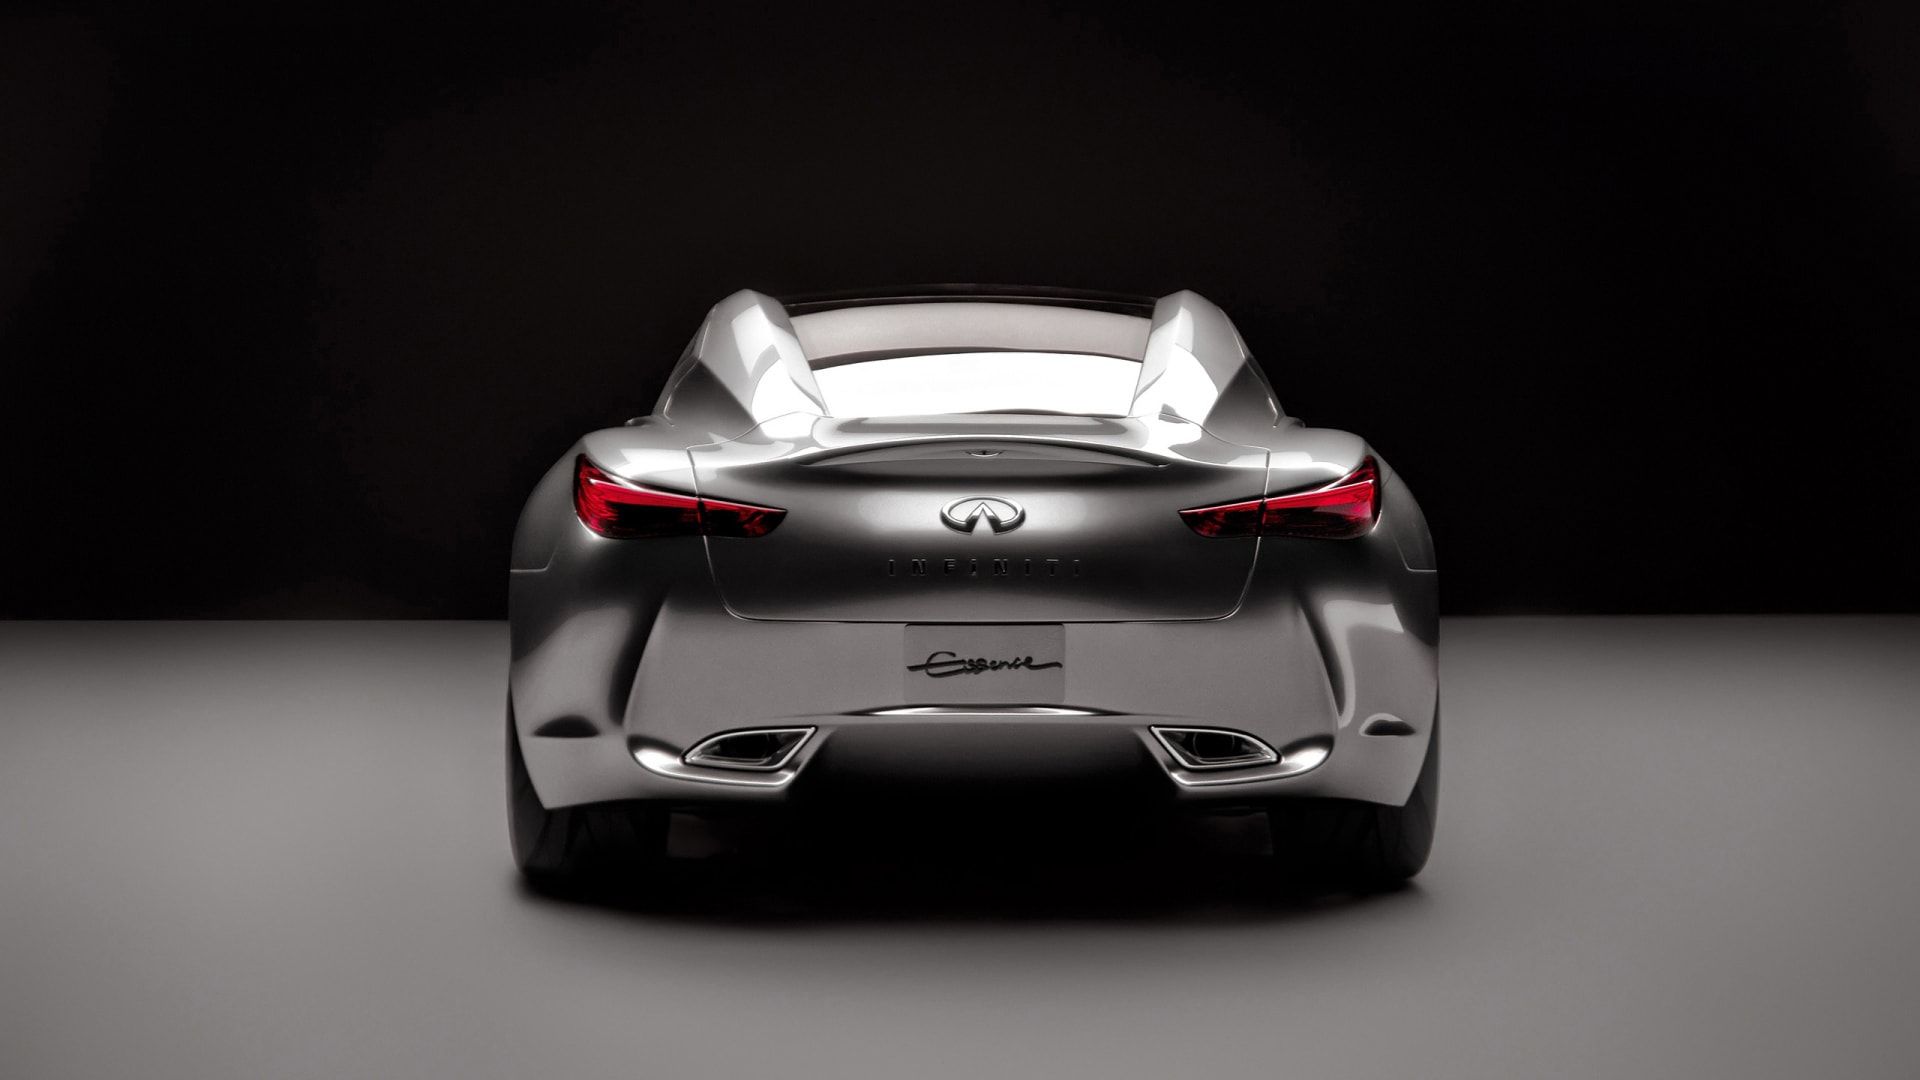 Infiniti Essence Concept Widescreen for desktop